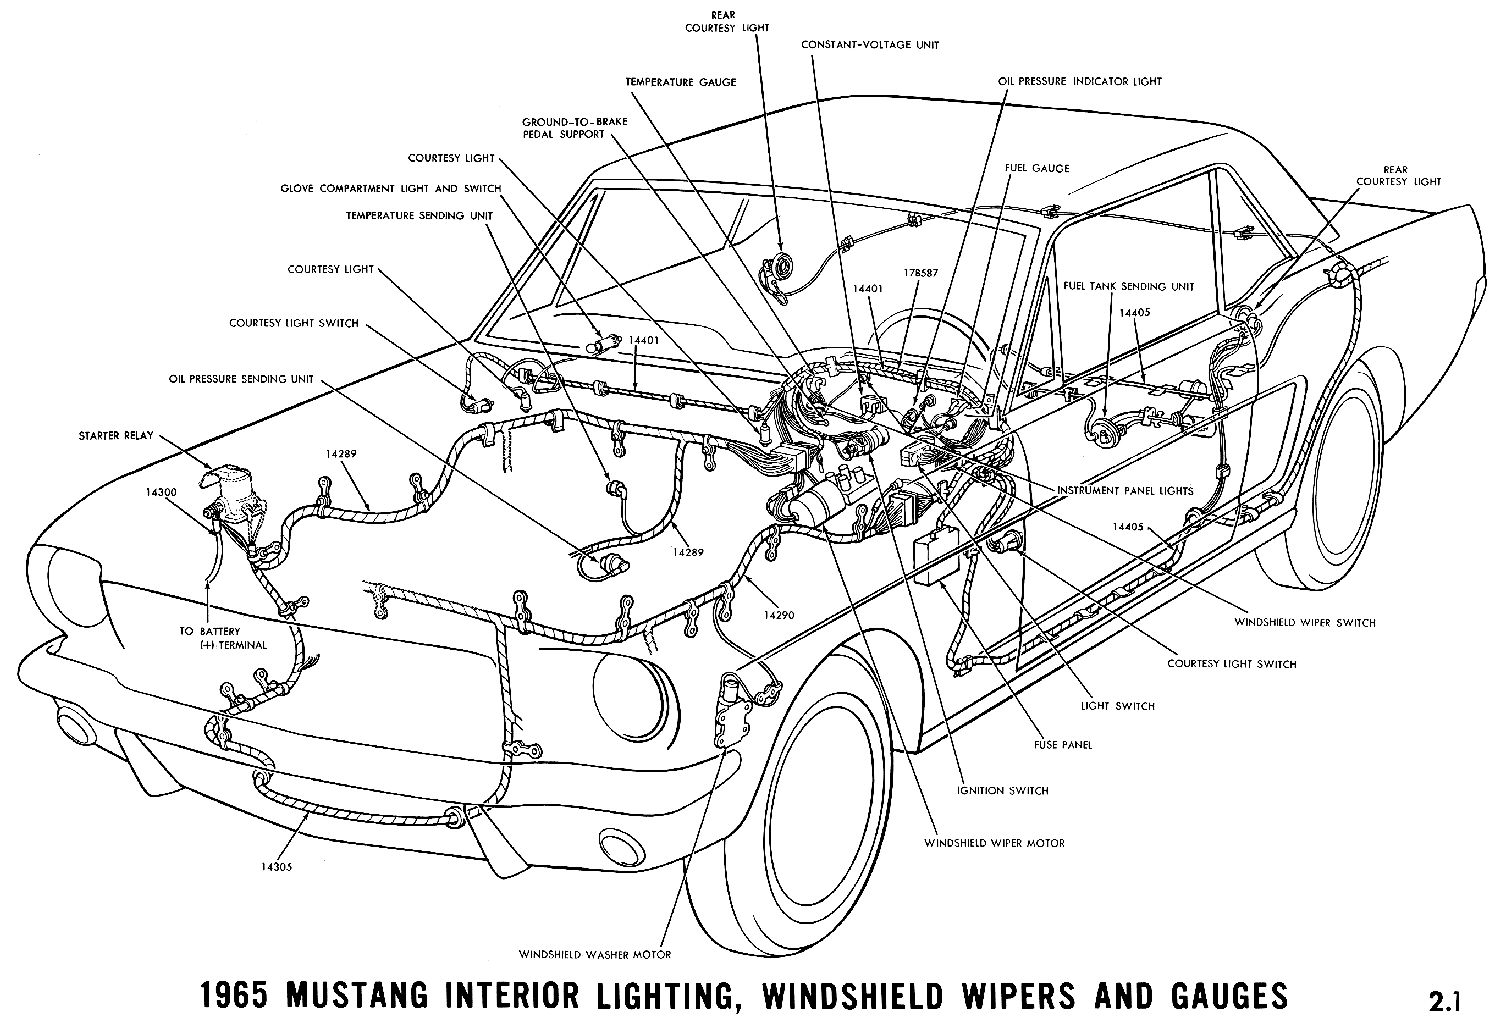 1965 Mustang Wiring Diagrams http://averagejoerestoration.com/resources/mustang-wiring-and-vacuum-diagrams/1965-mustang-wiring-diagrams/